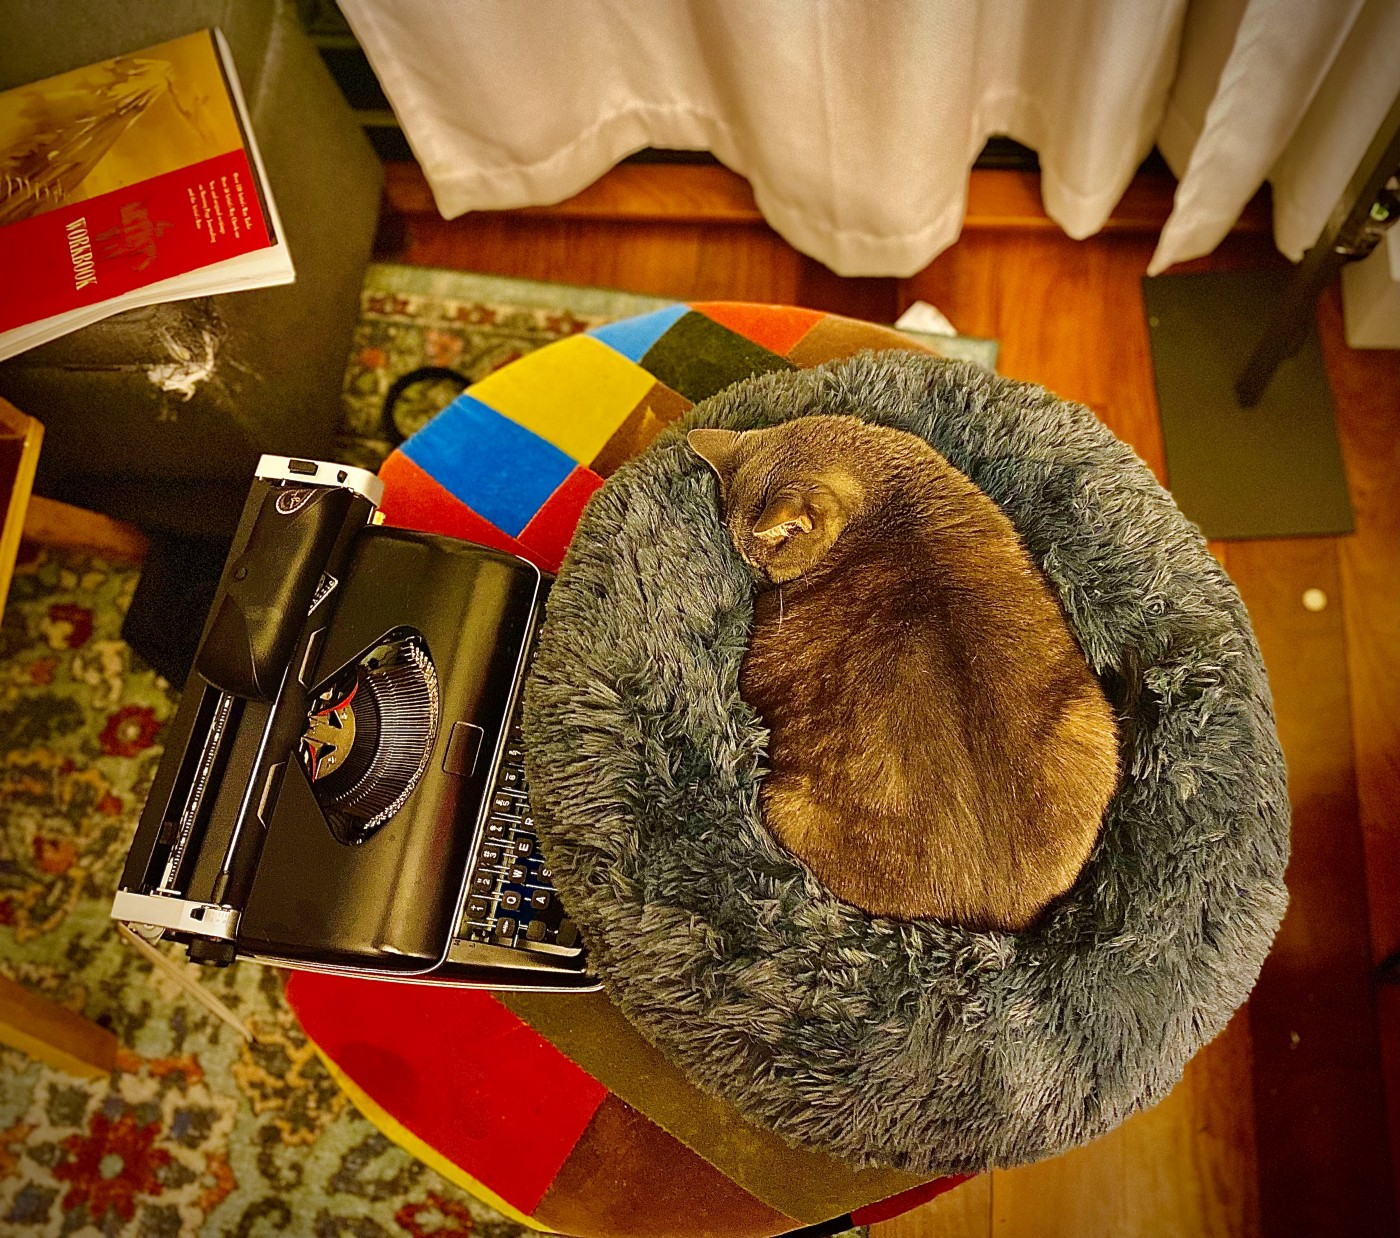 POV camera from above a colorful patchwork ottoman, on which we see a black typewriter on the left and a napping grey cat on the right. Below, a portion of a blue rug on the left and bamboo hardwood floor on the right.